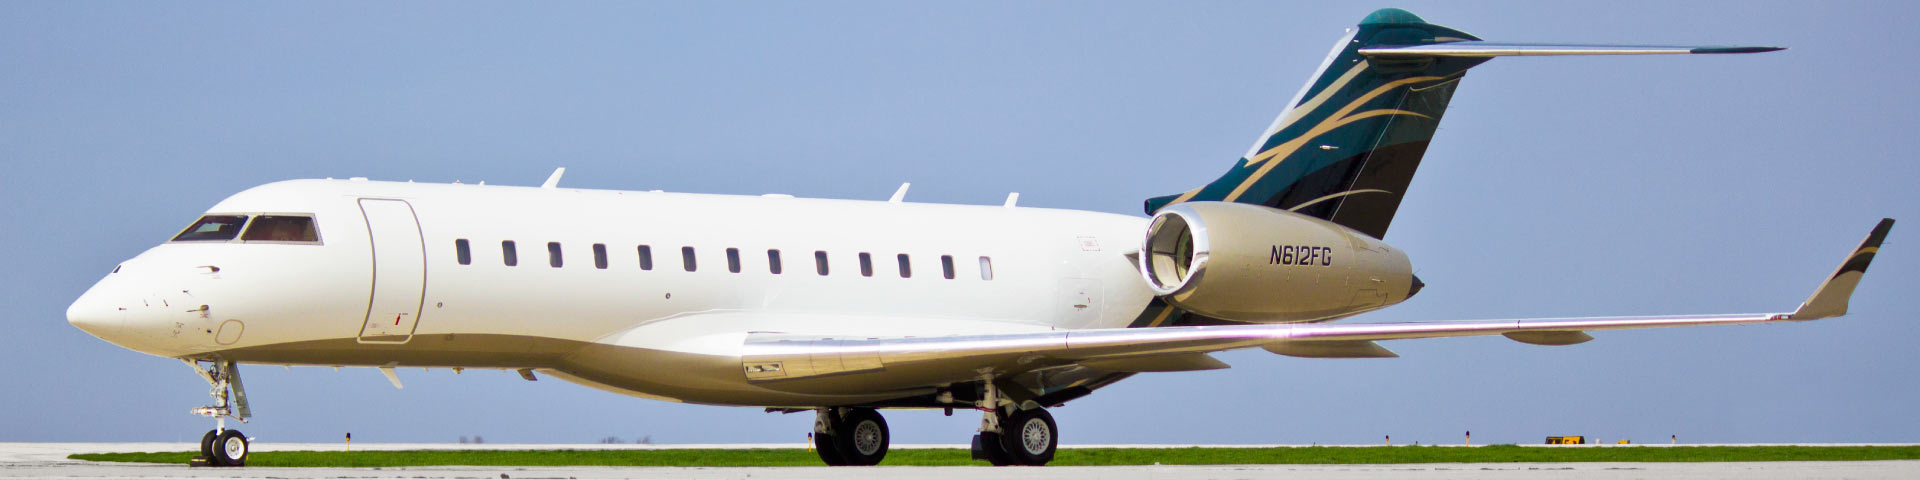 Global 6000 Charter Aircraft